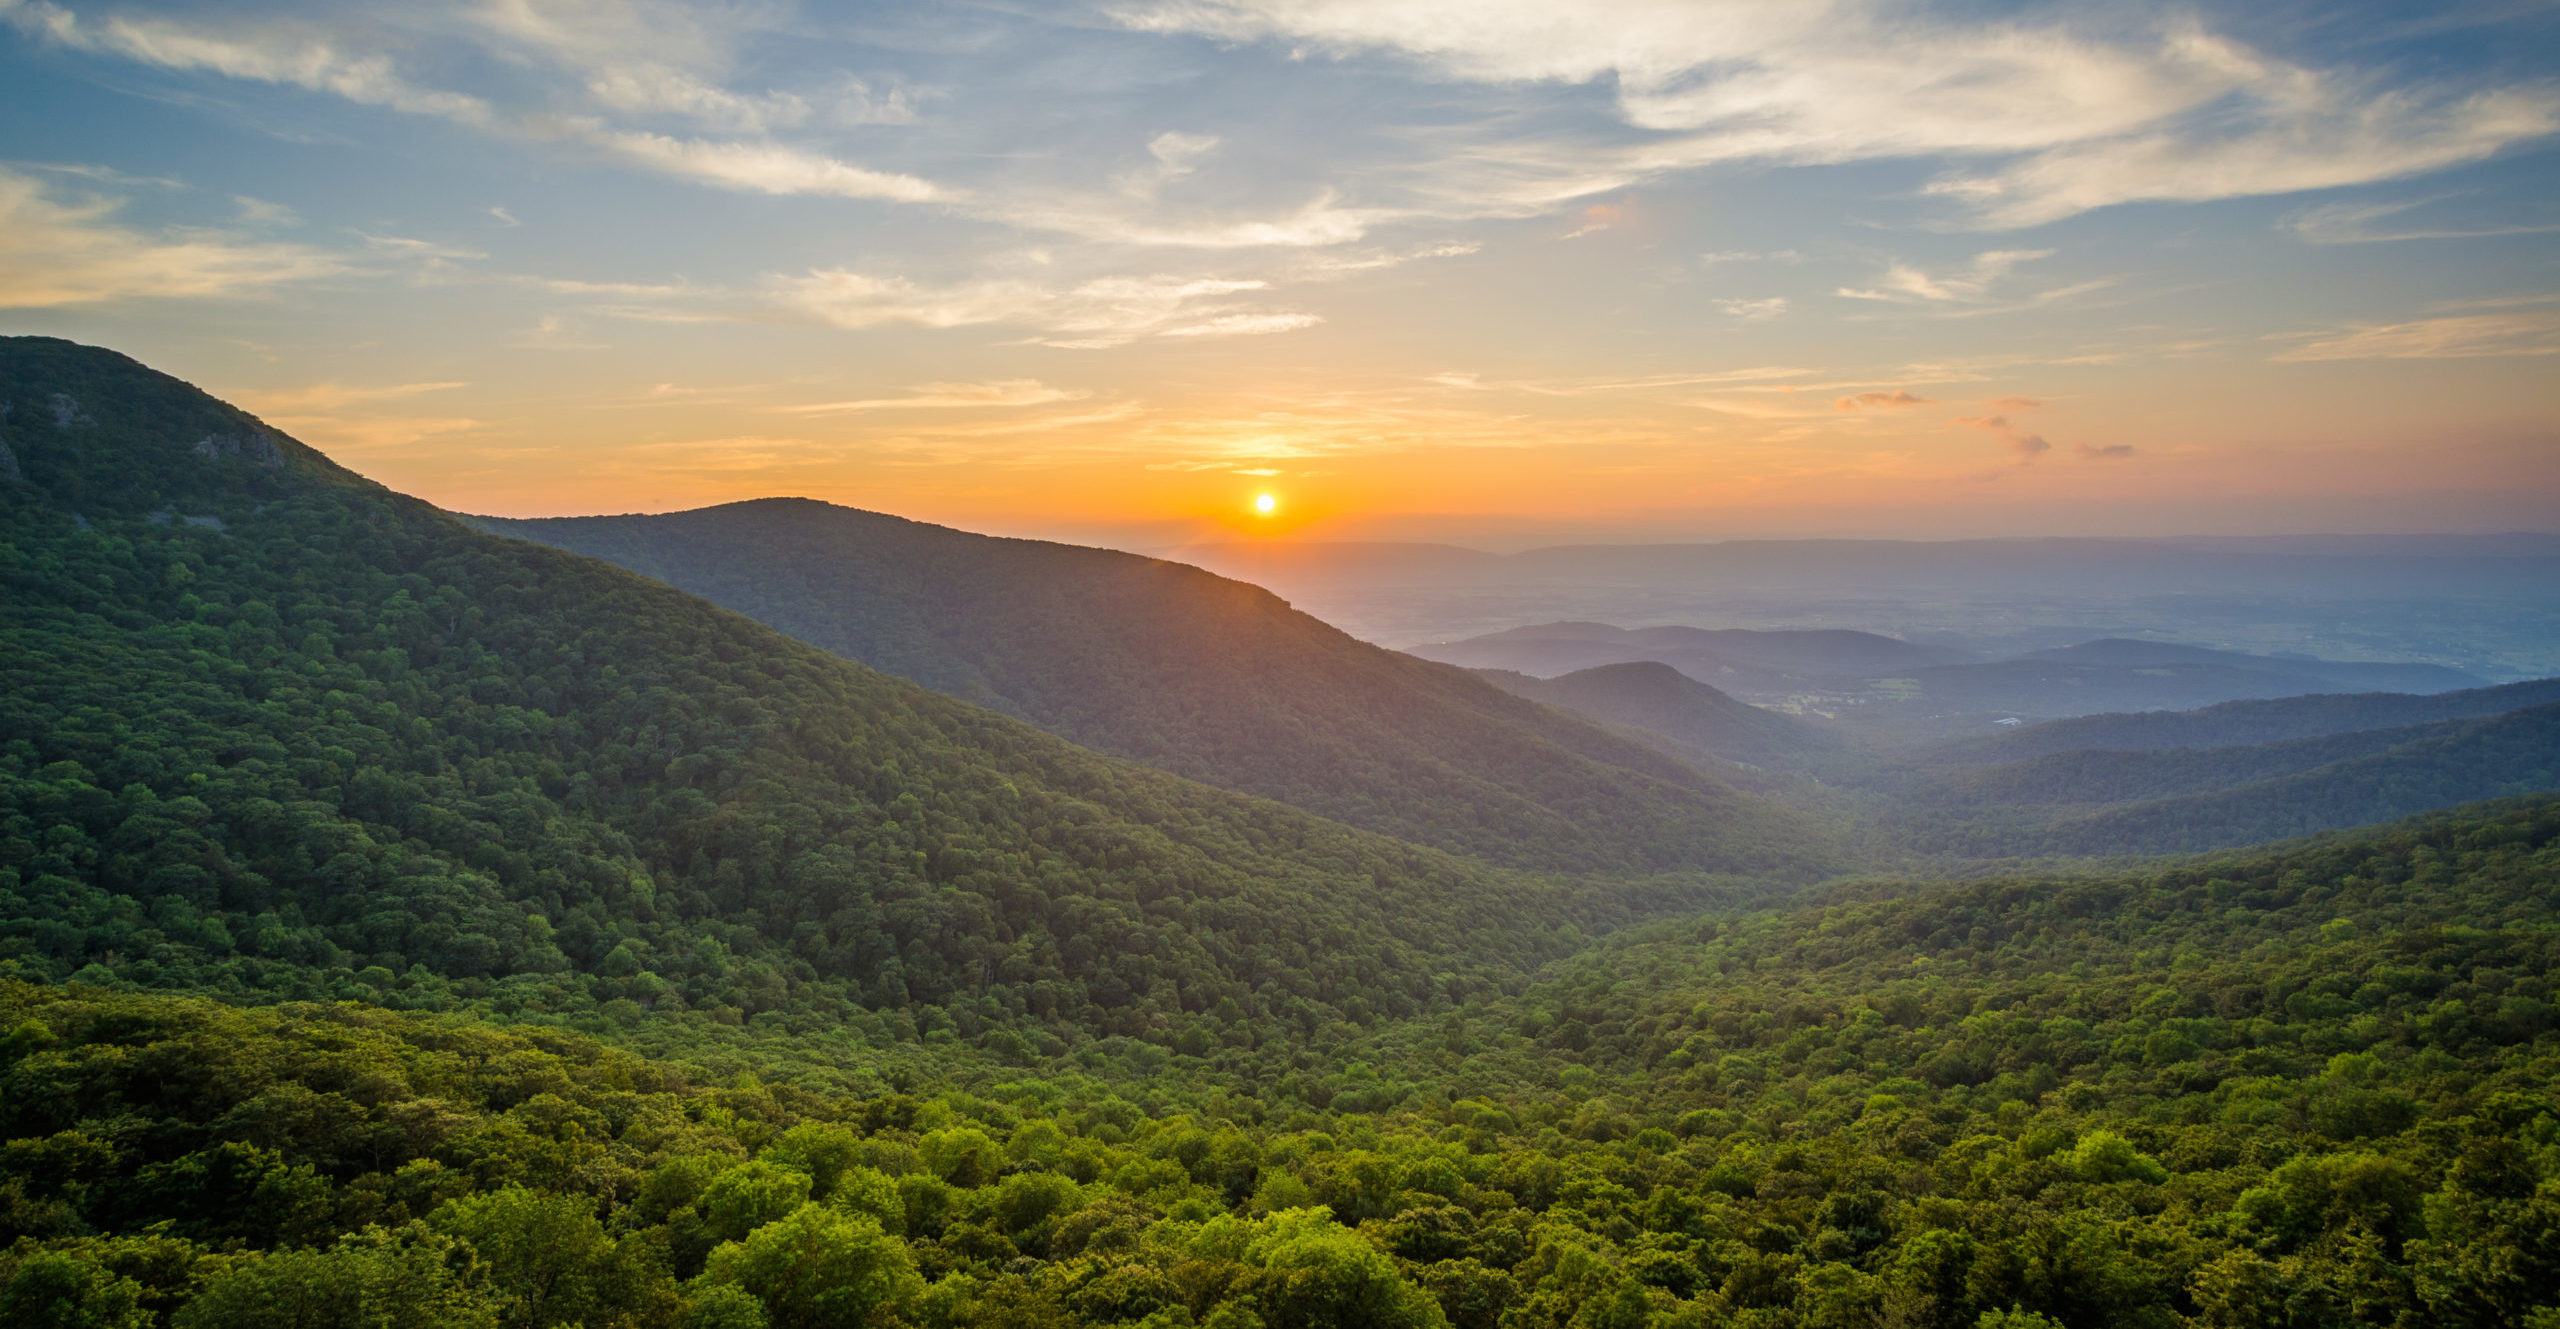 Image of sunset over Shenandoah National Park, located just east of Charlottesville